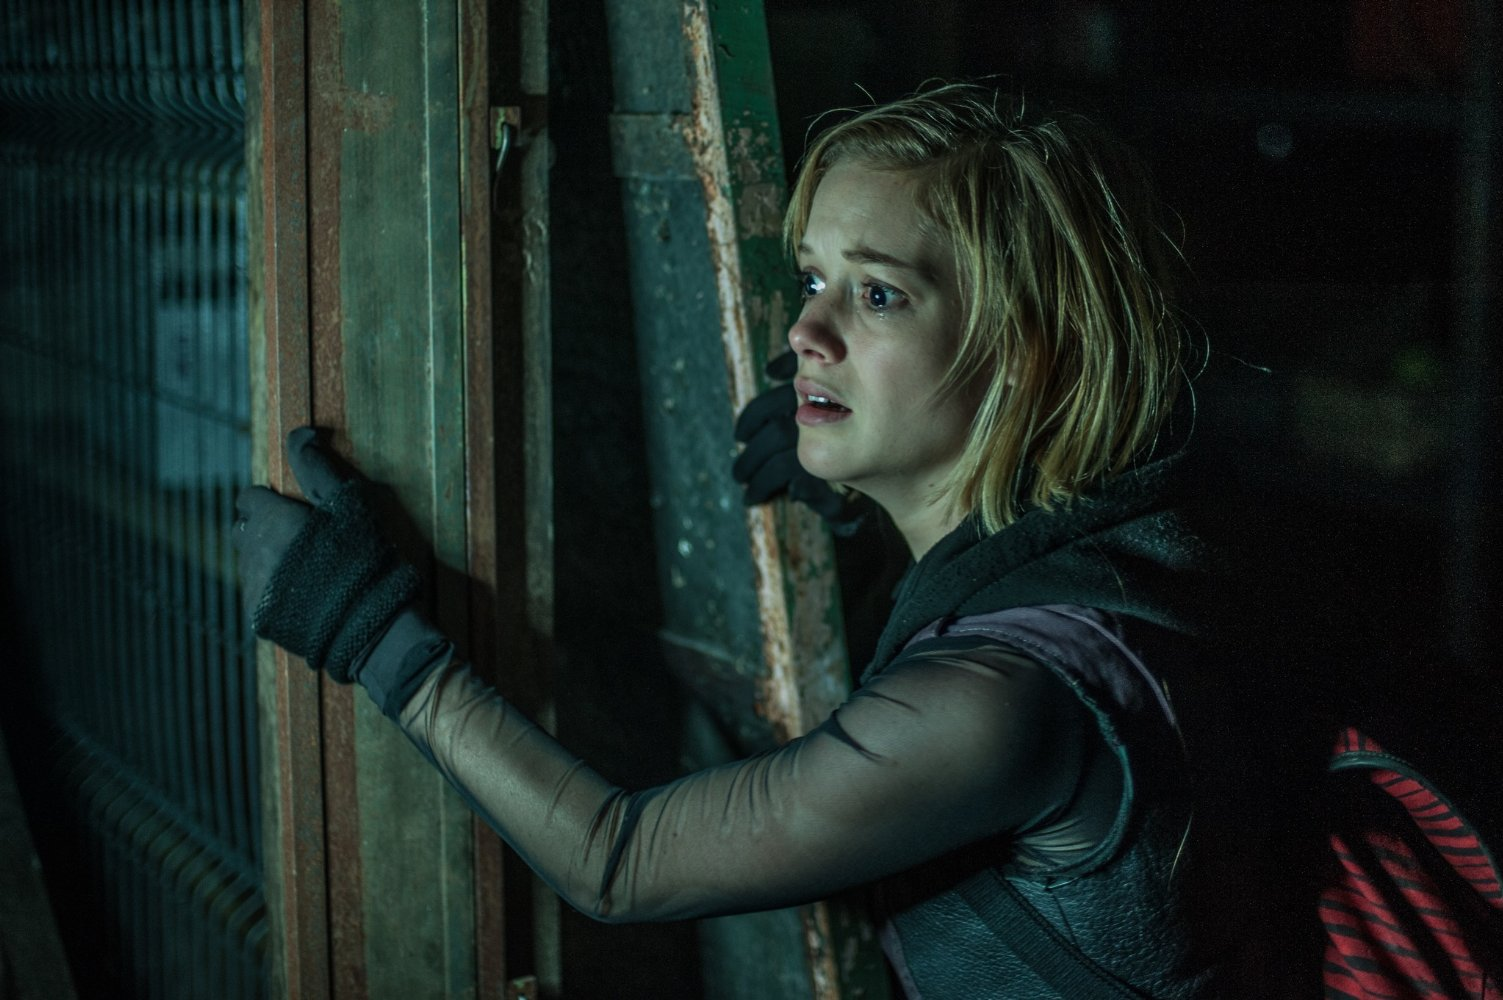 This is a still taken from the film Don't Breathe.